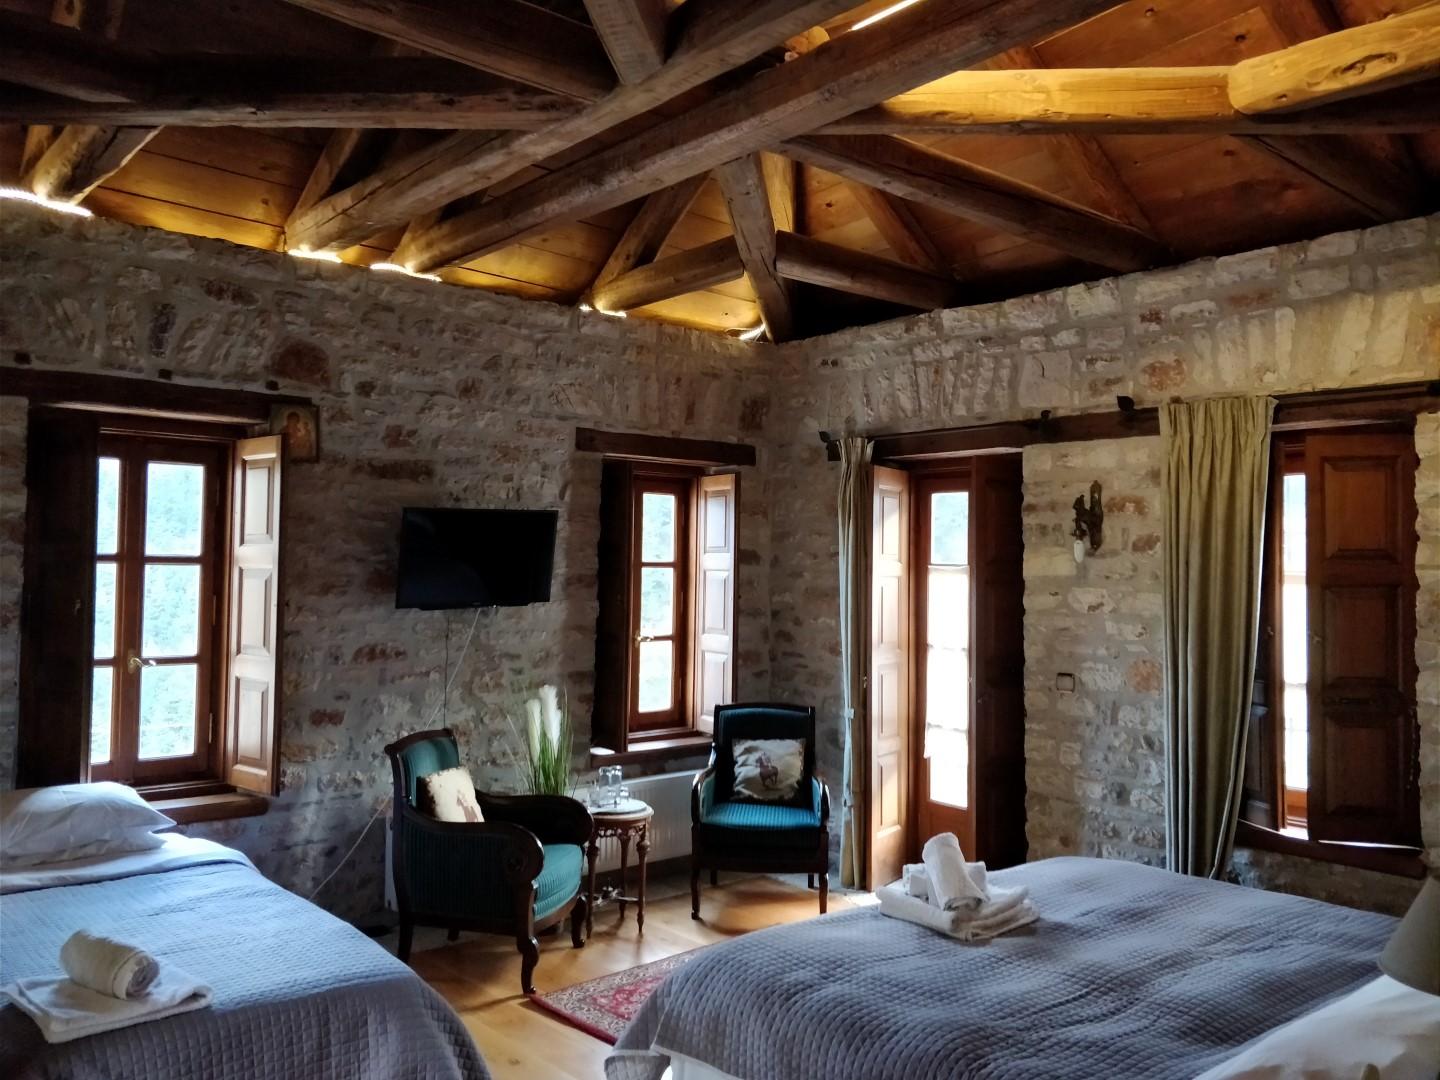 hotel room with two beds and stone walls and wooden roof